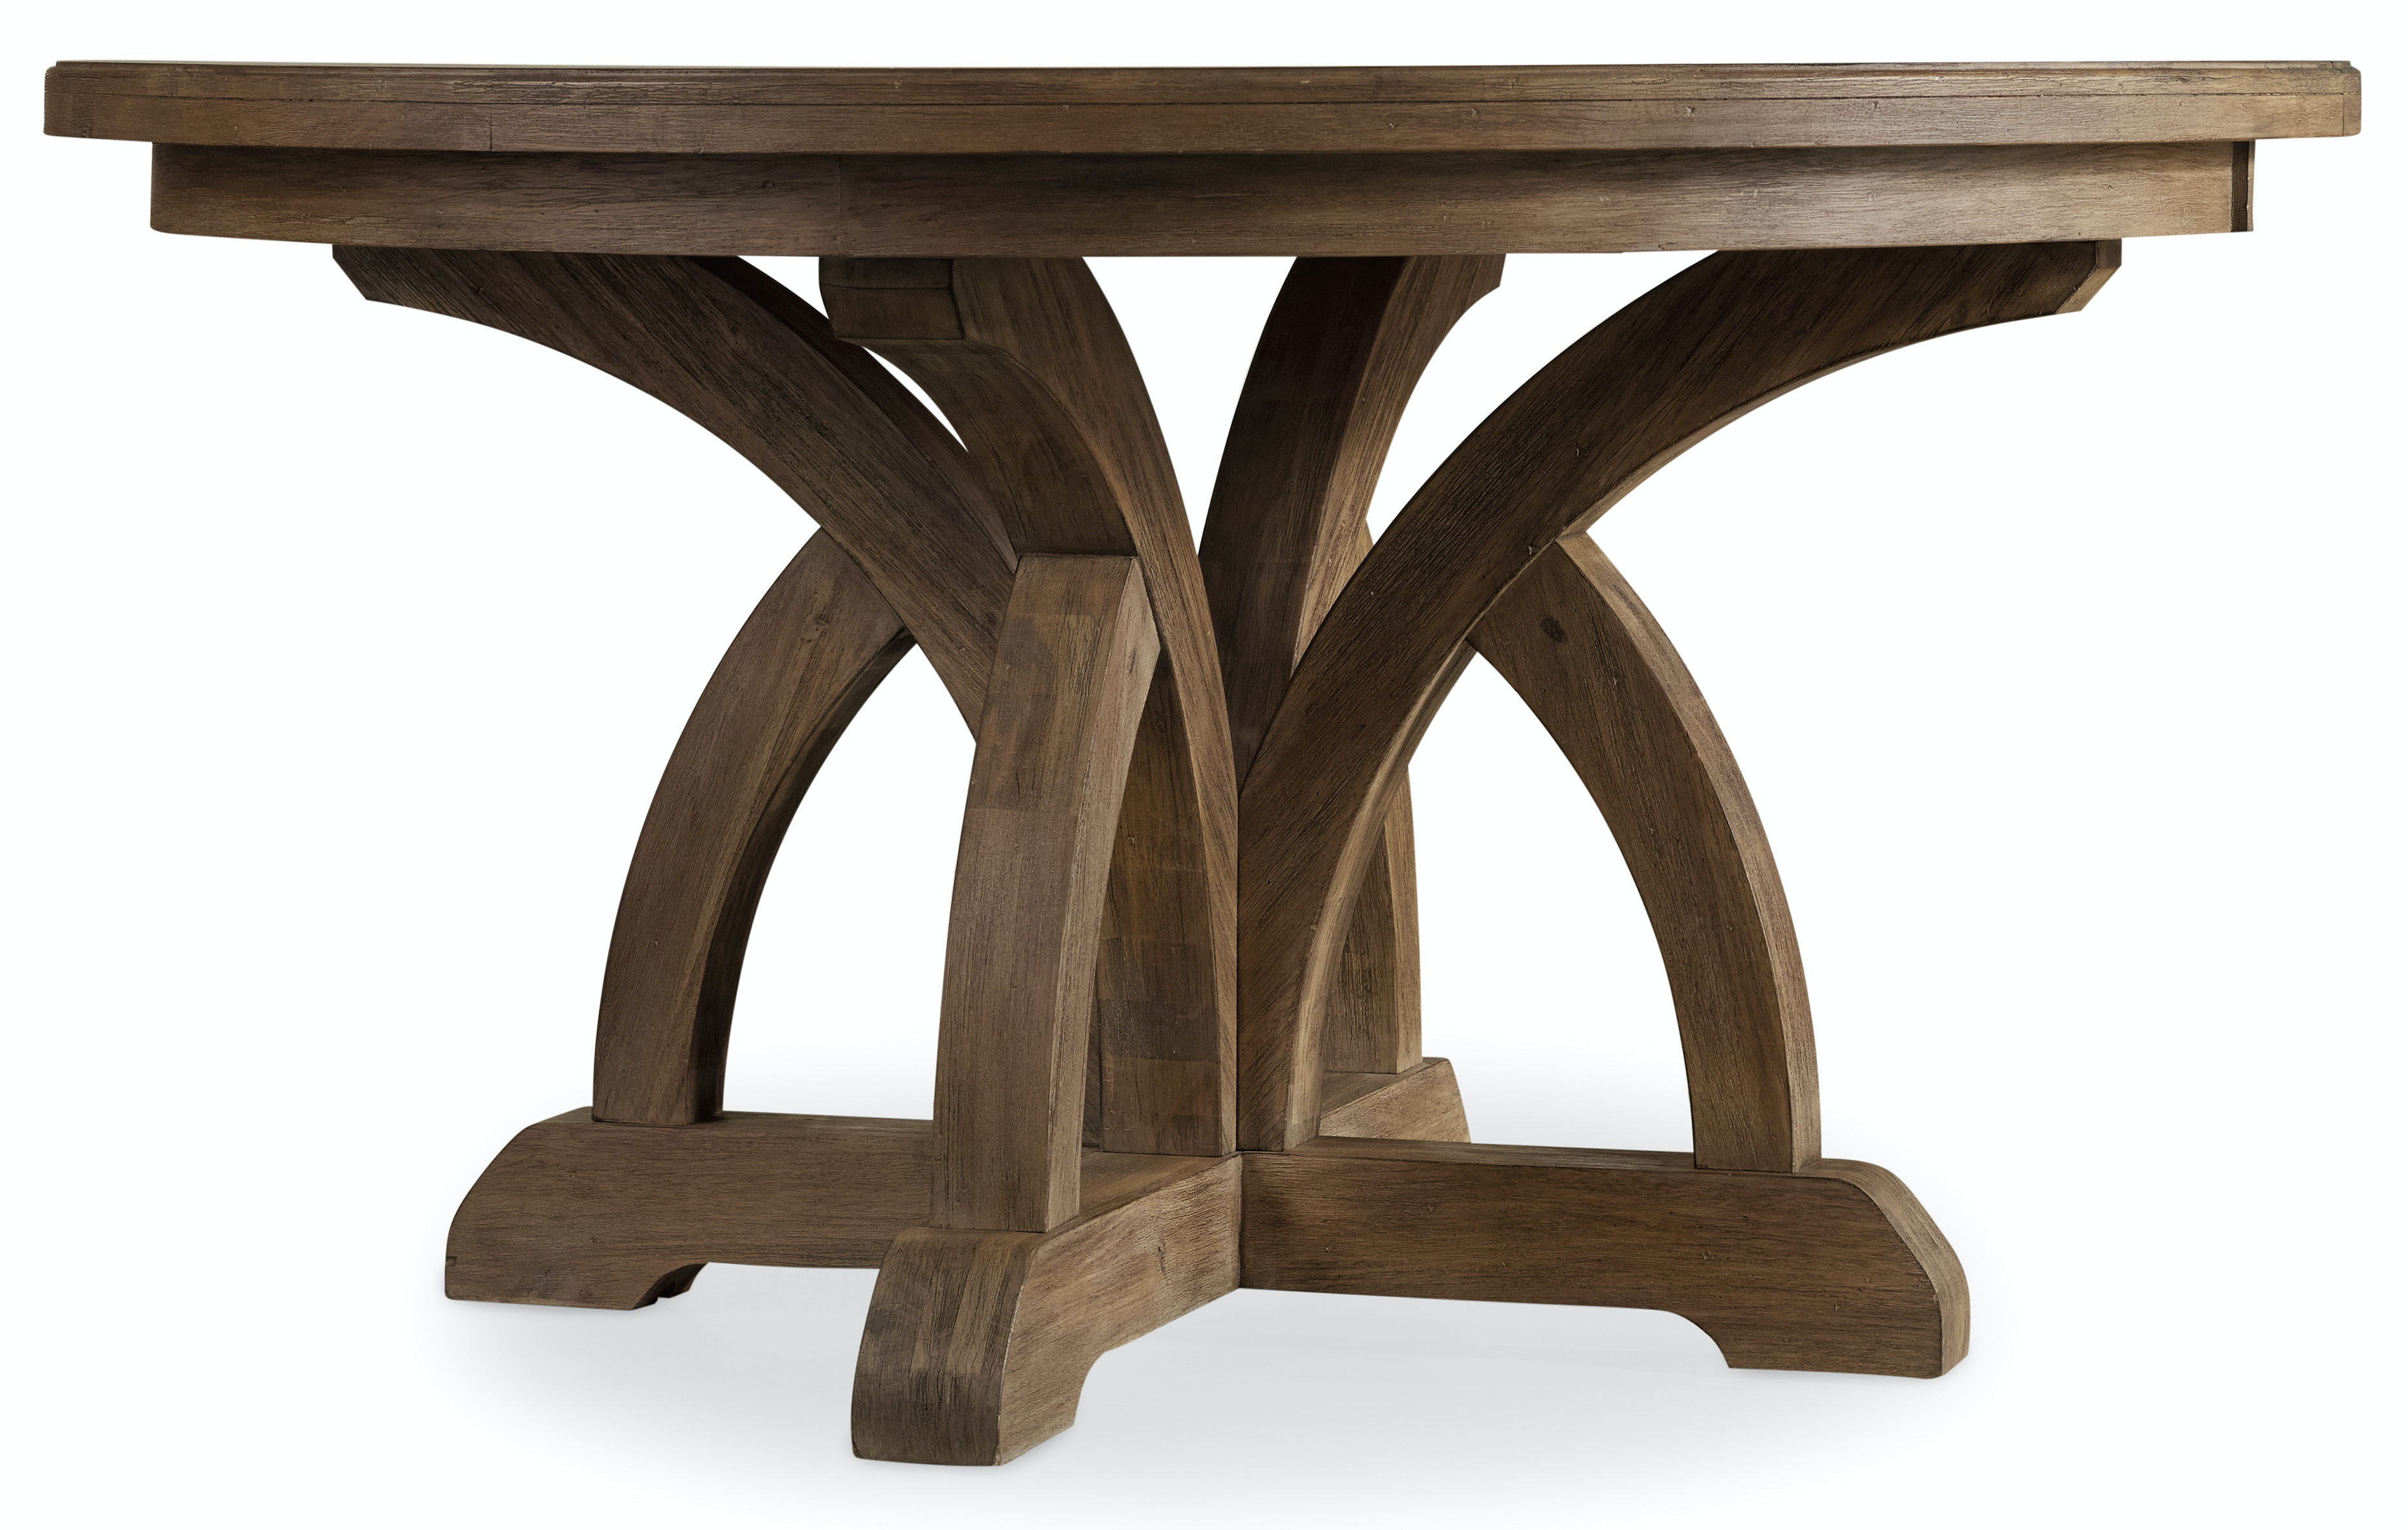 Great Round Dining Room Tables With Leaves 31 In Dining Room Table